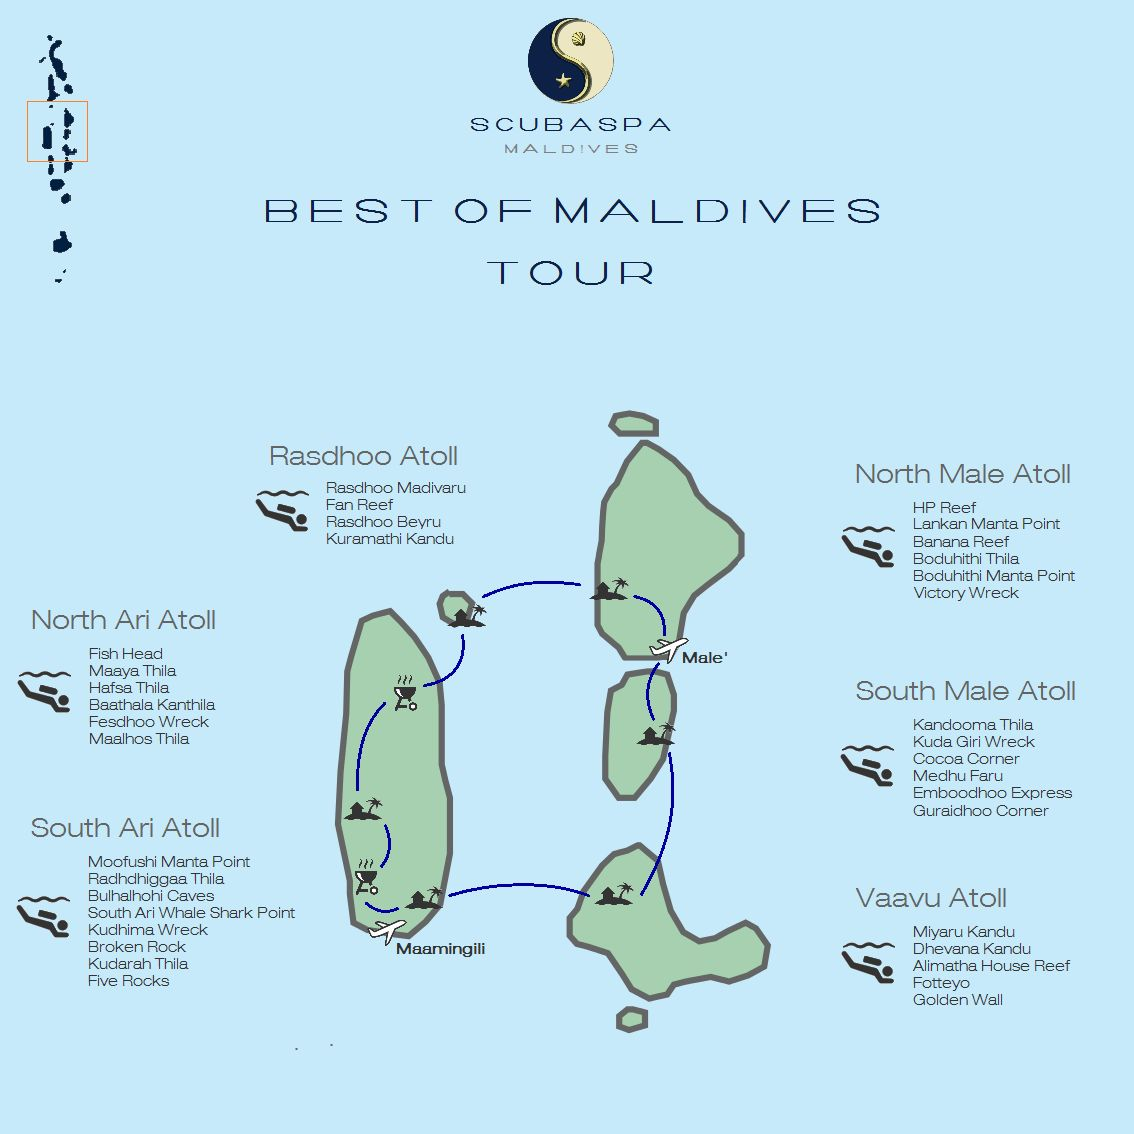 Malediven Karte Atolle.Route Floating Resort By Scubaspa Holiday Maldives Dive And Spa